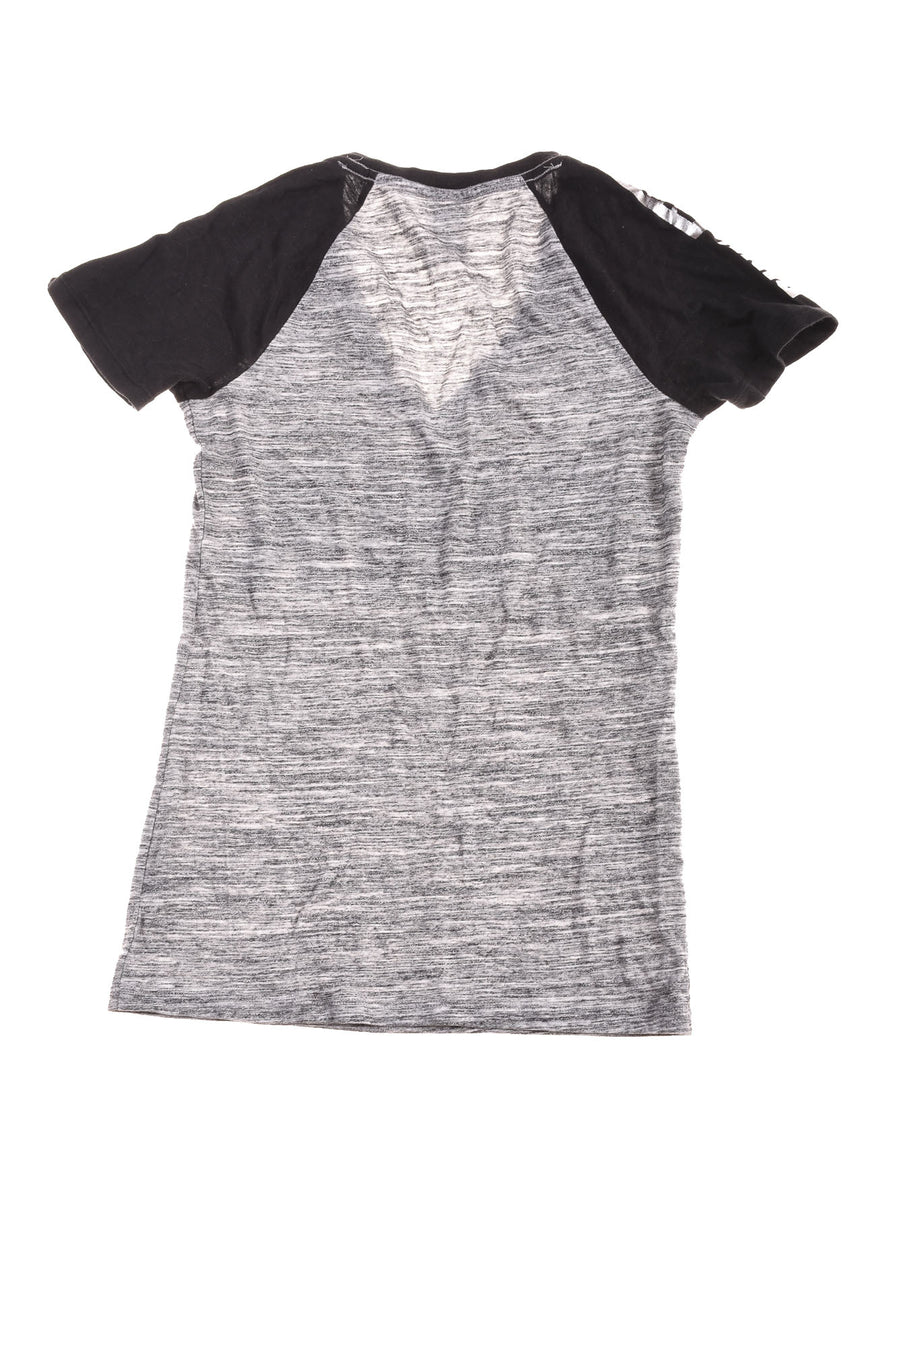 USED Pink By Victoria's Secret Women's Top X-Small Gray & Black